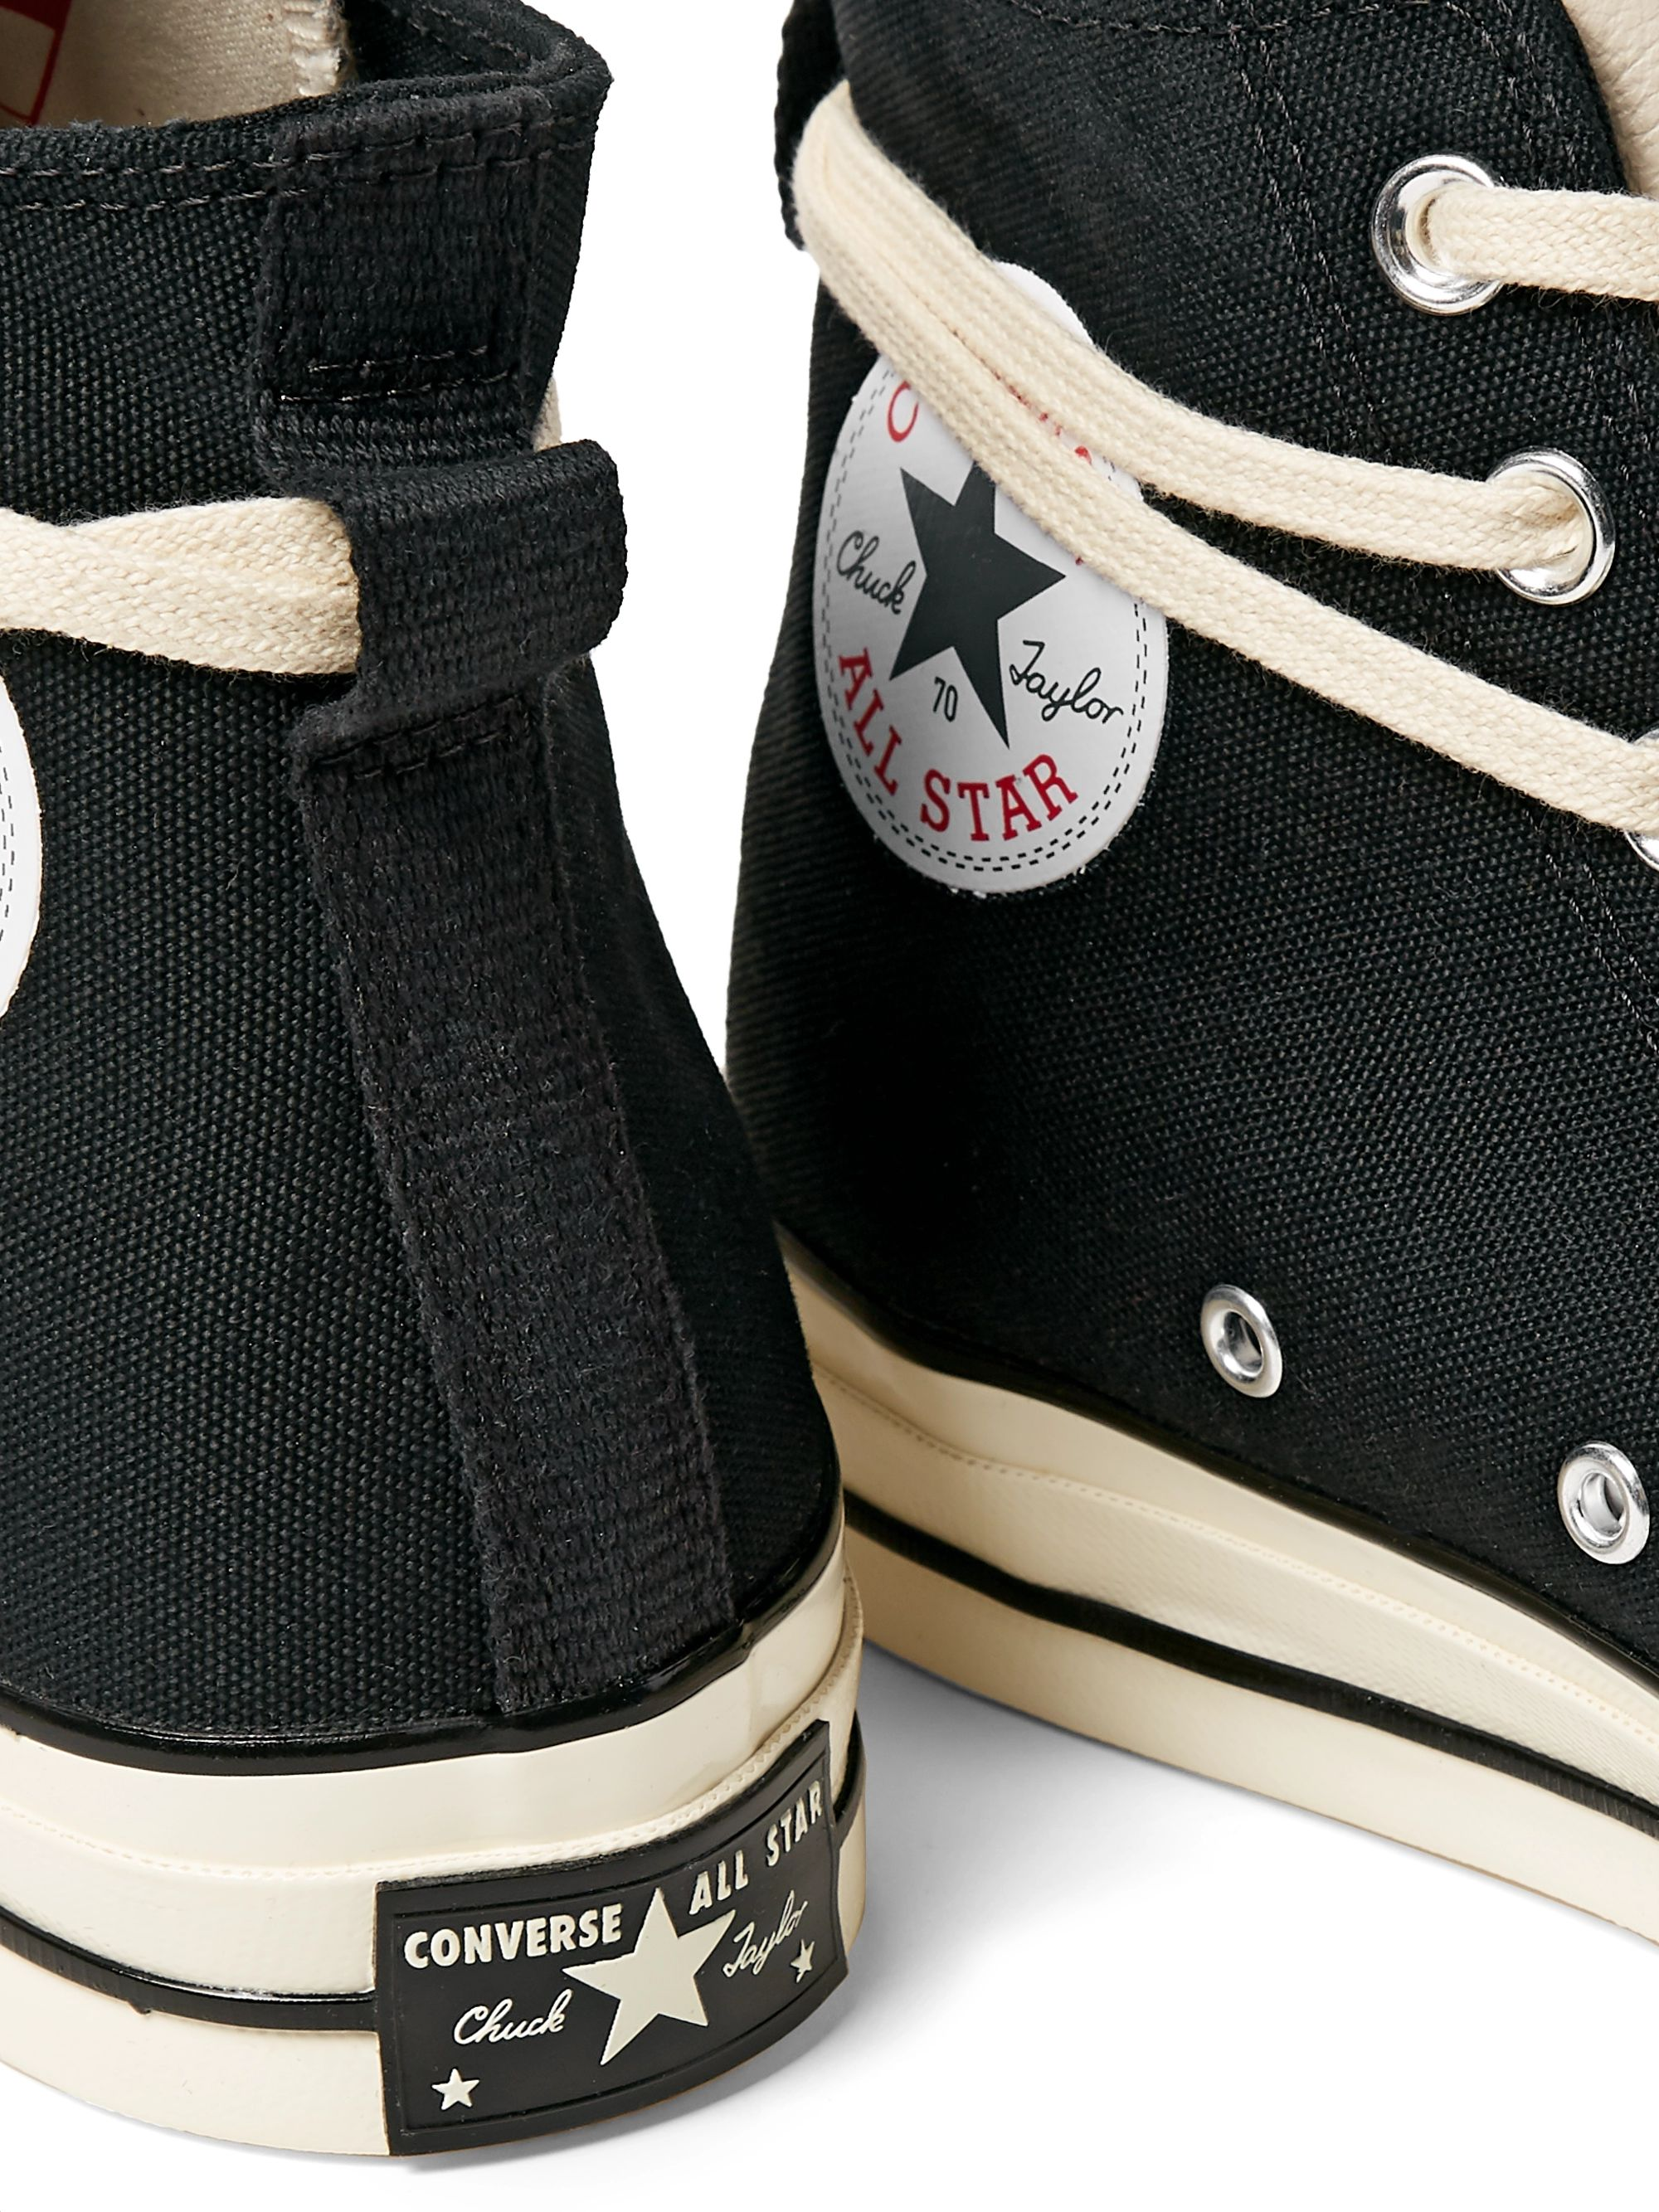 Details about Converse Chuck Taylor II Hi Trainers New in box Size UK size 4,5,6,7,8,9.